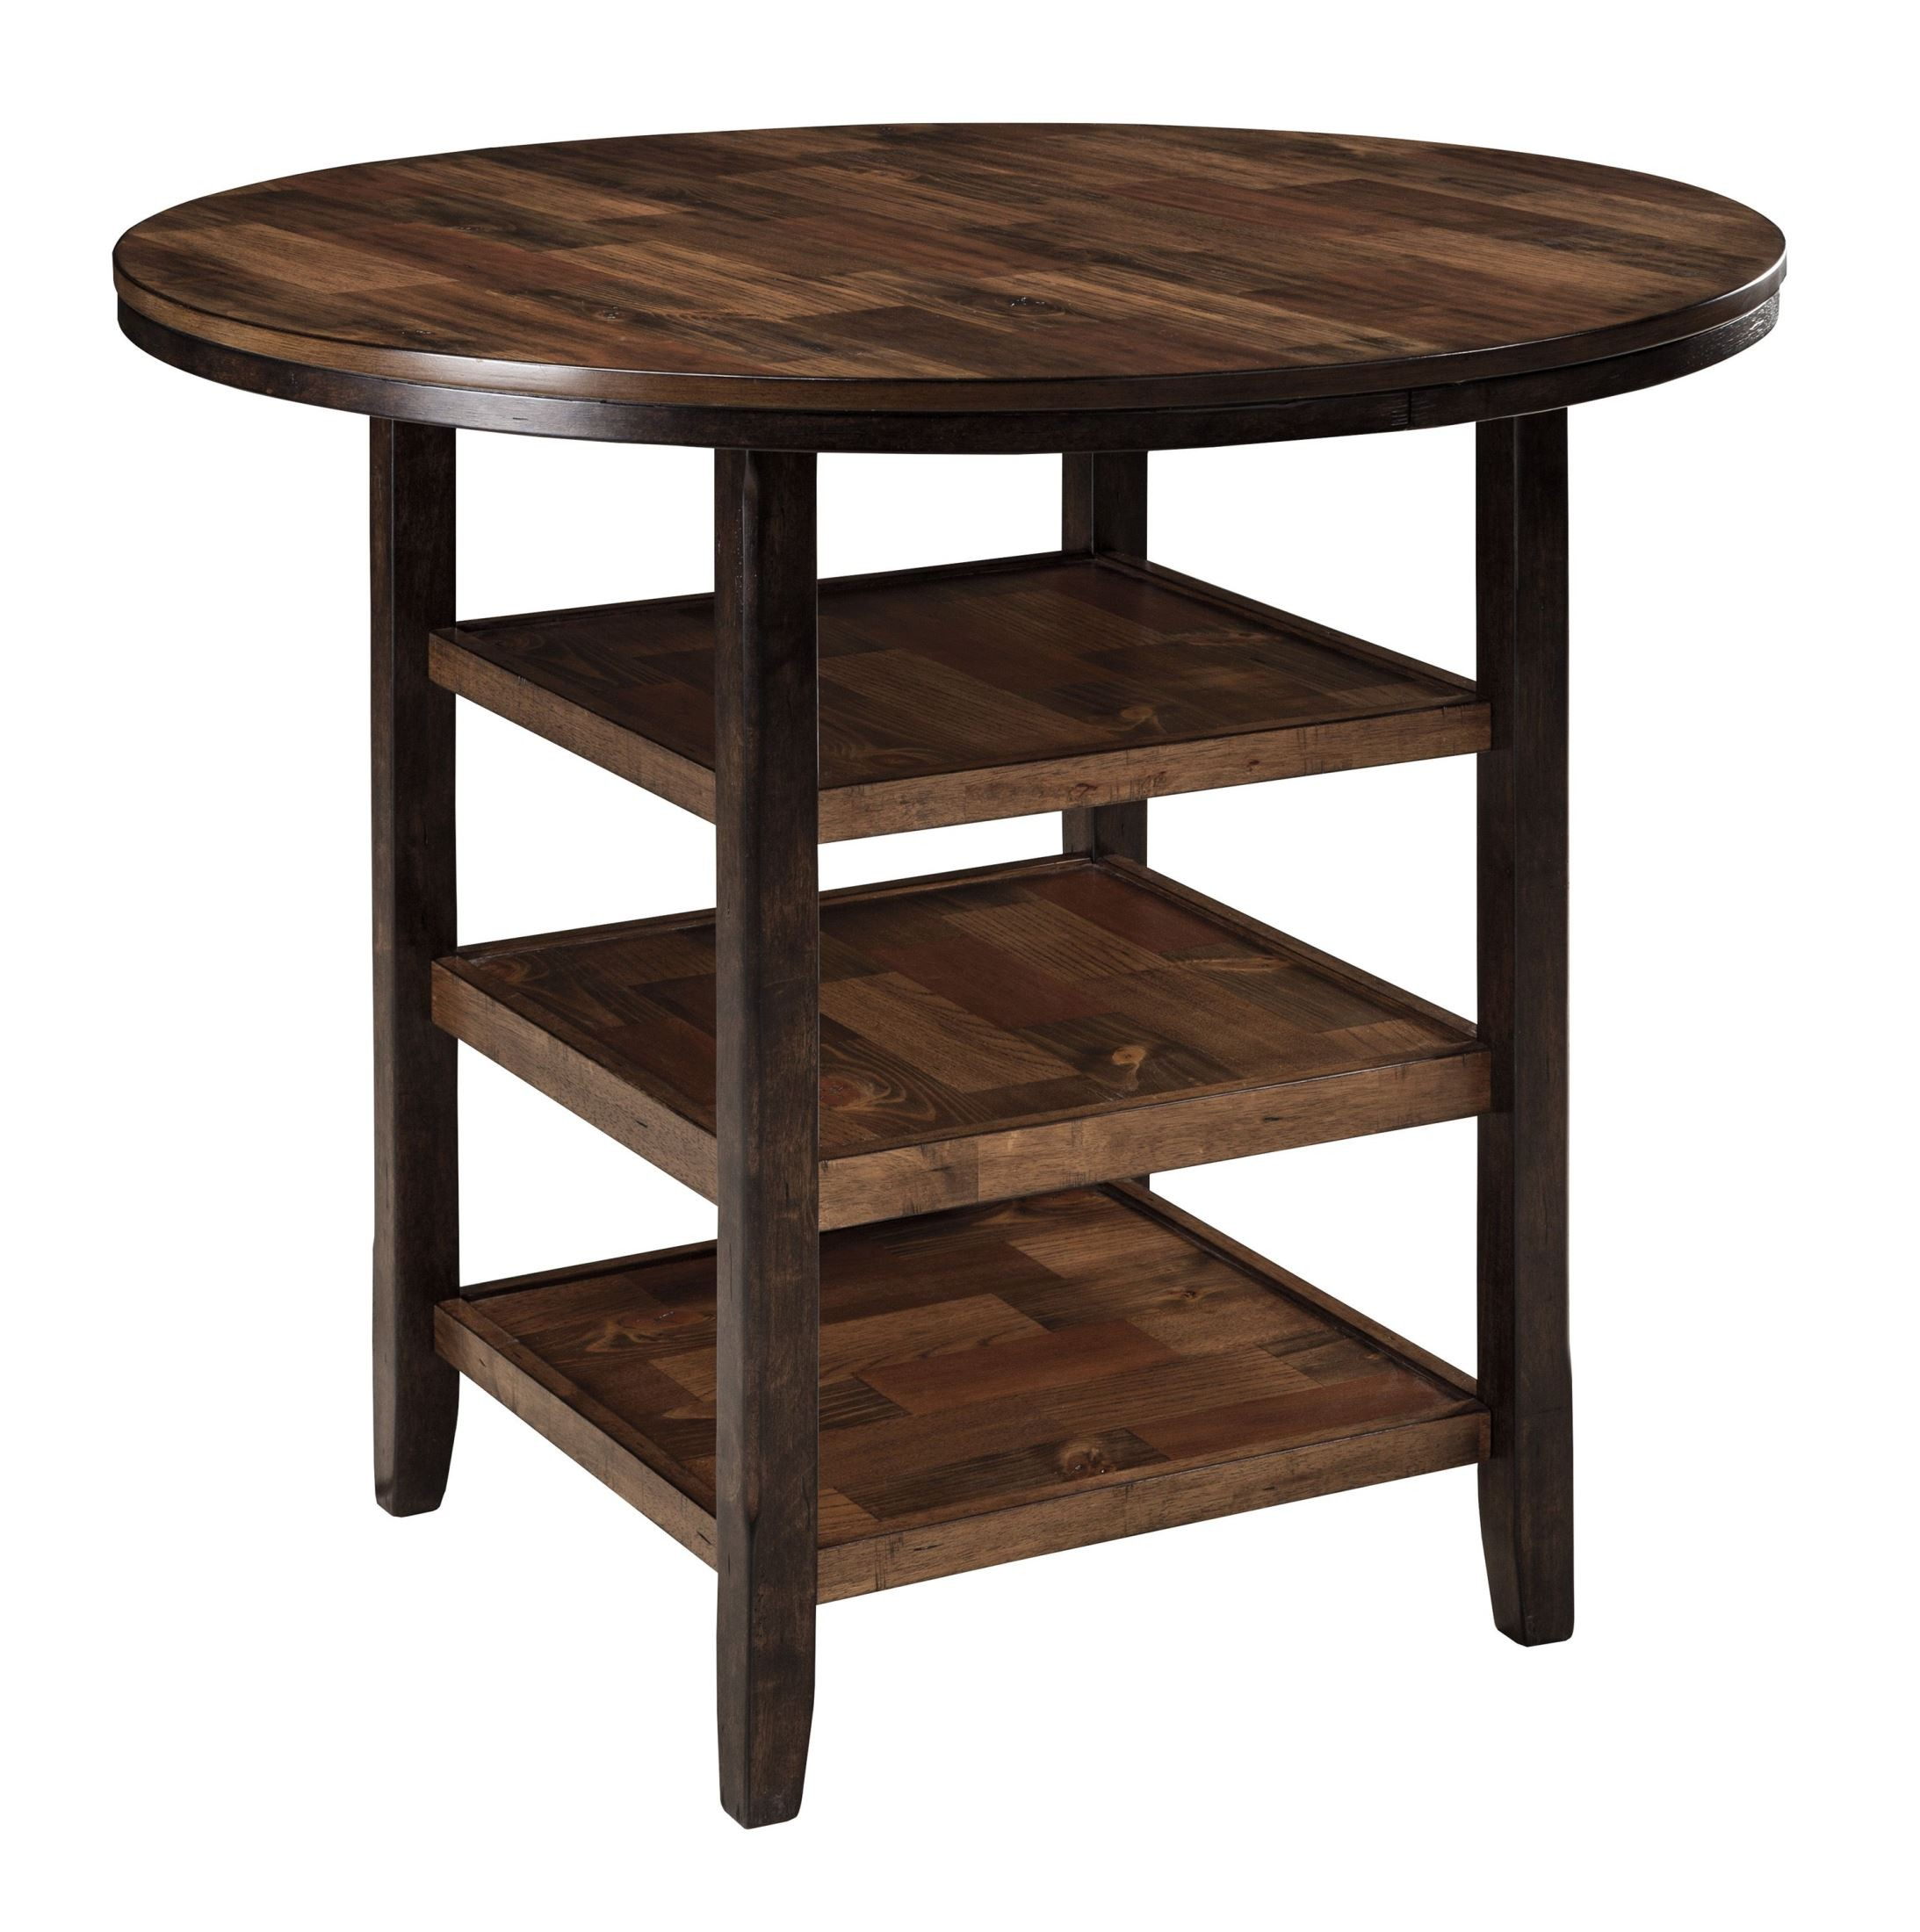 Moriann round counter height dining room table from ashley d608 13 coleman furniture - Height dining room table ...